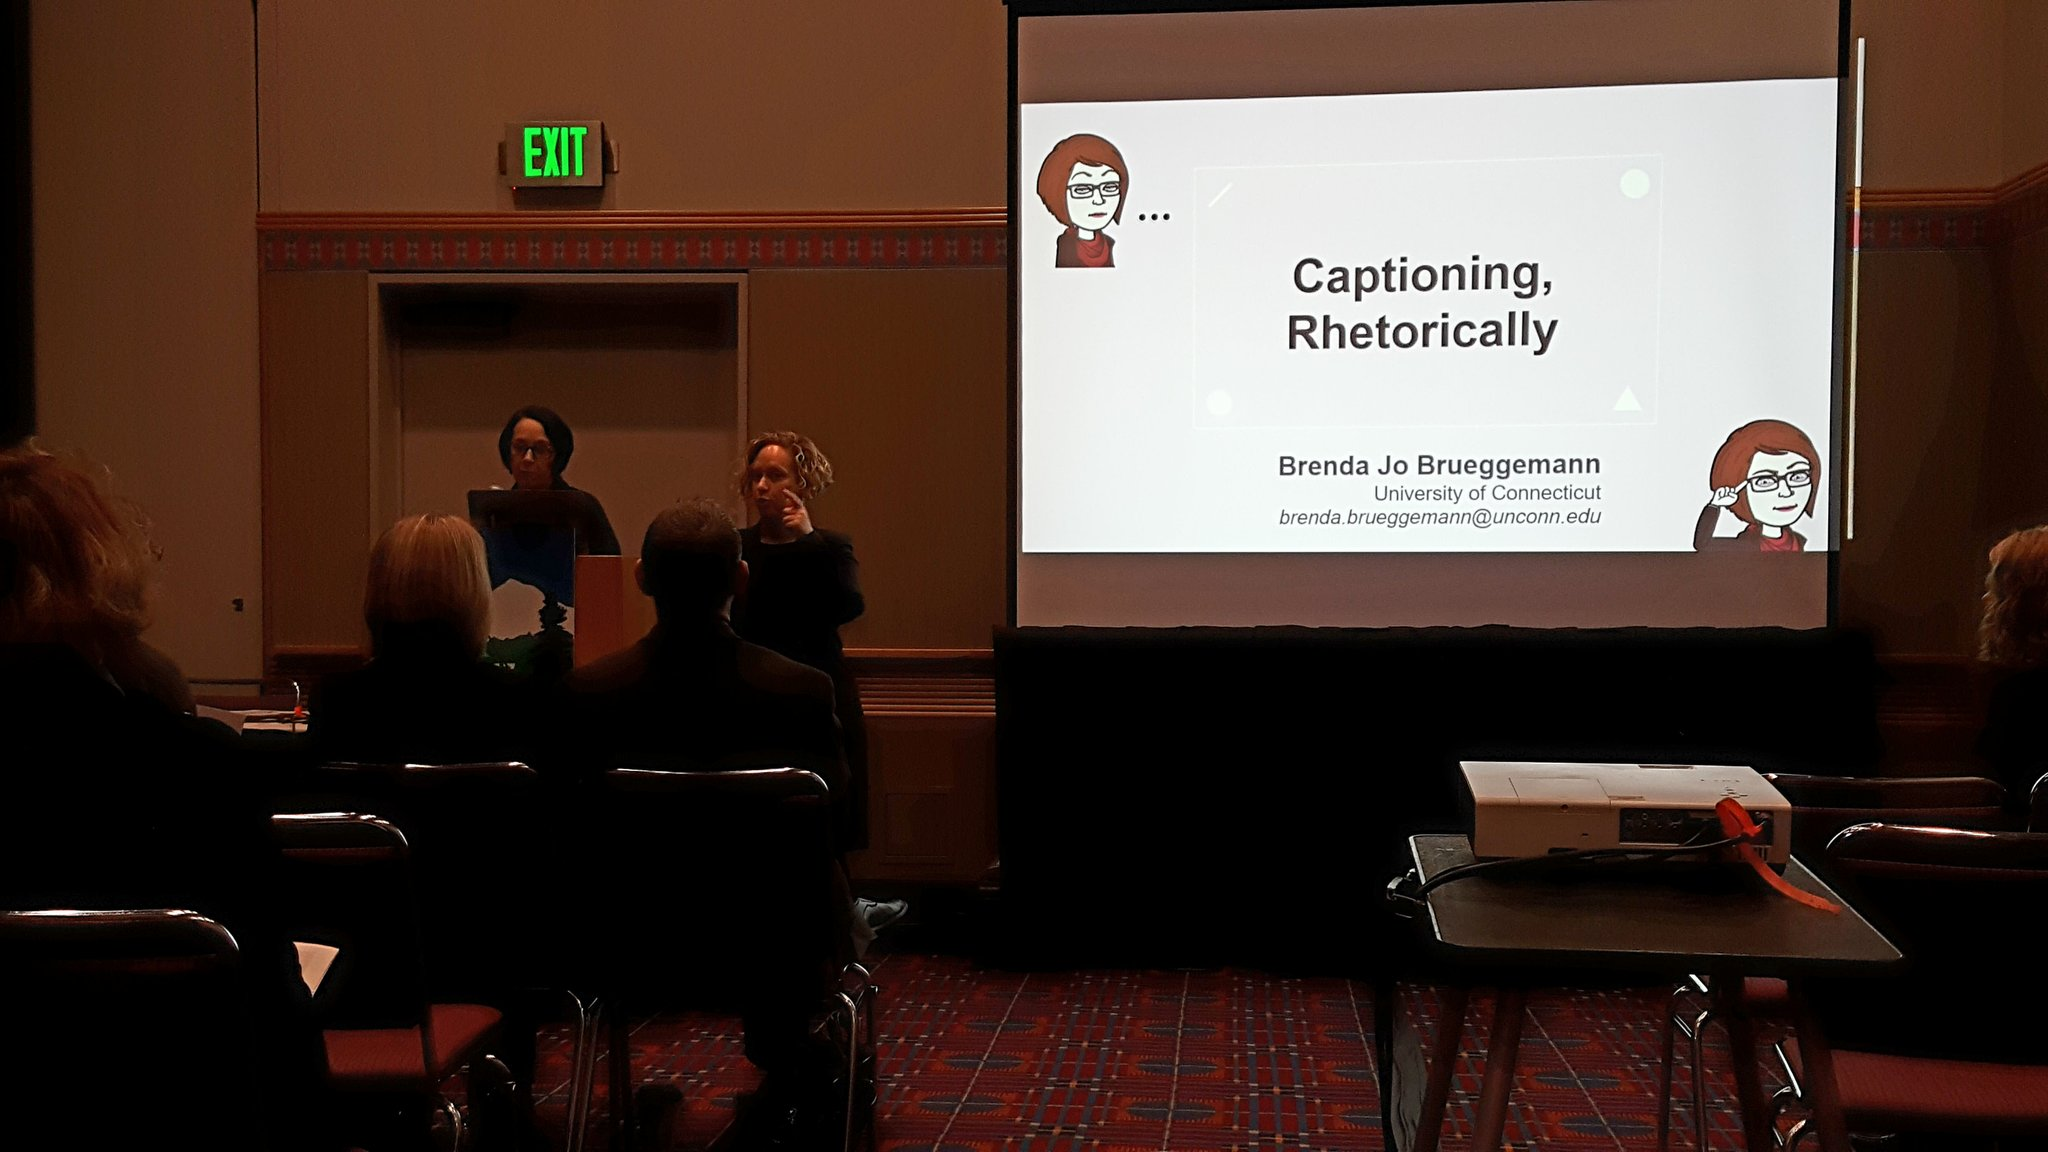 Brenda Jo Brueggemann: Captioning Rhetorically #4C17 #F46 https://t.co/R7DaJWt8rK